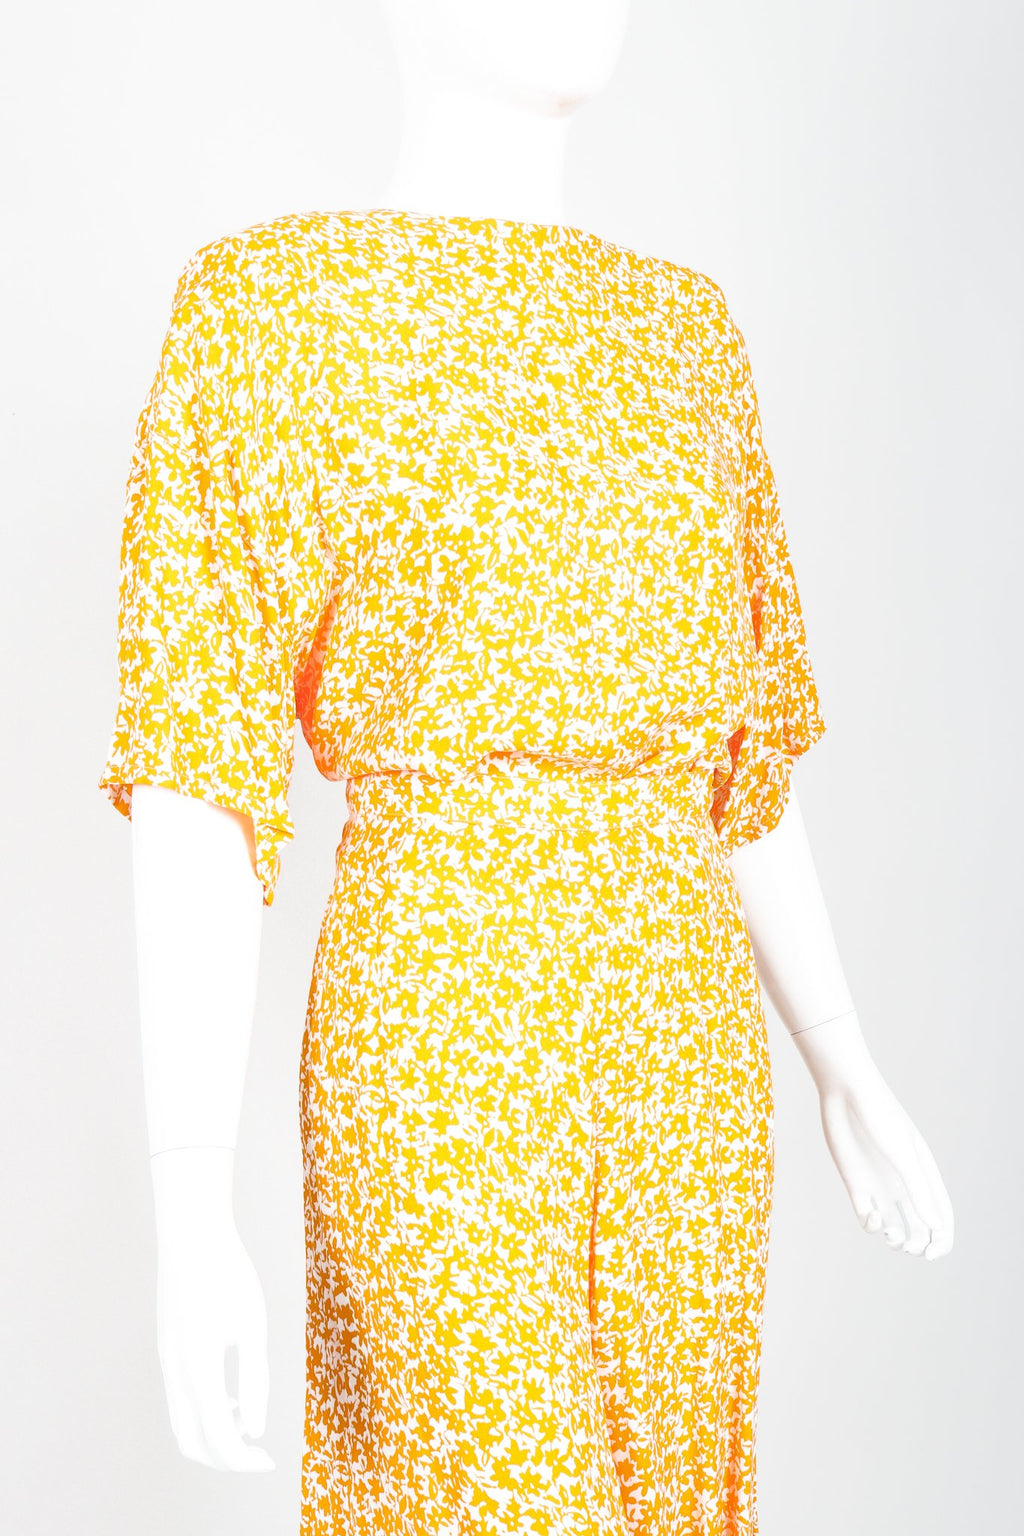 Vintage Sonia Rykiel Graphic Floral Boxy Top and Culotte Set Angled Crop at Recess